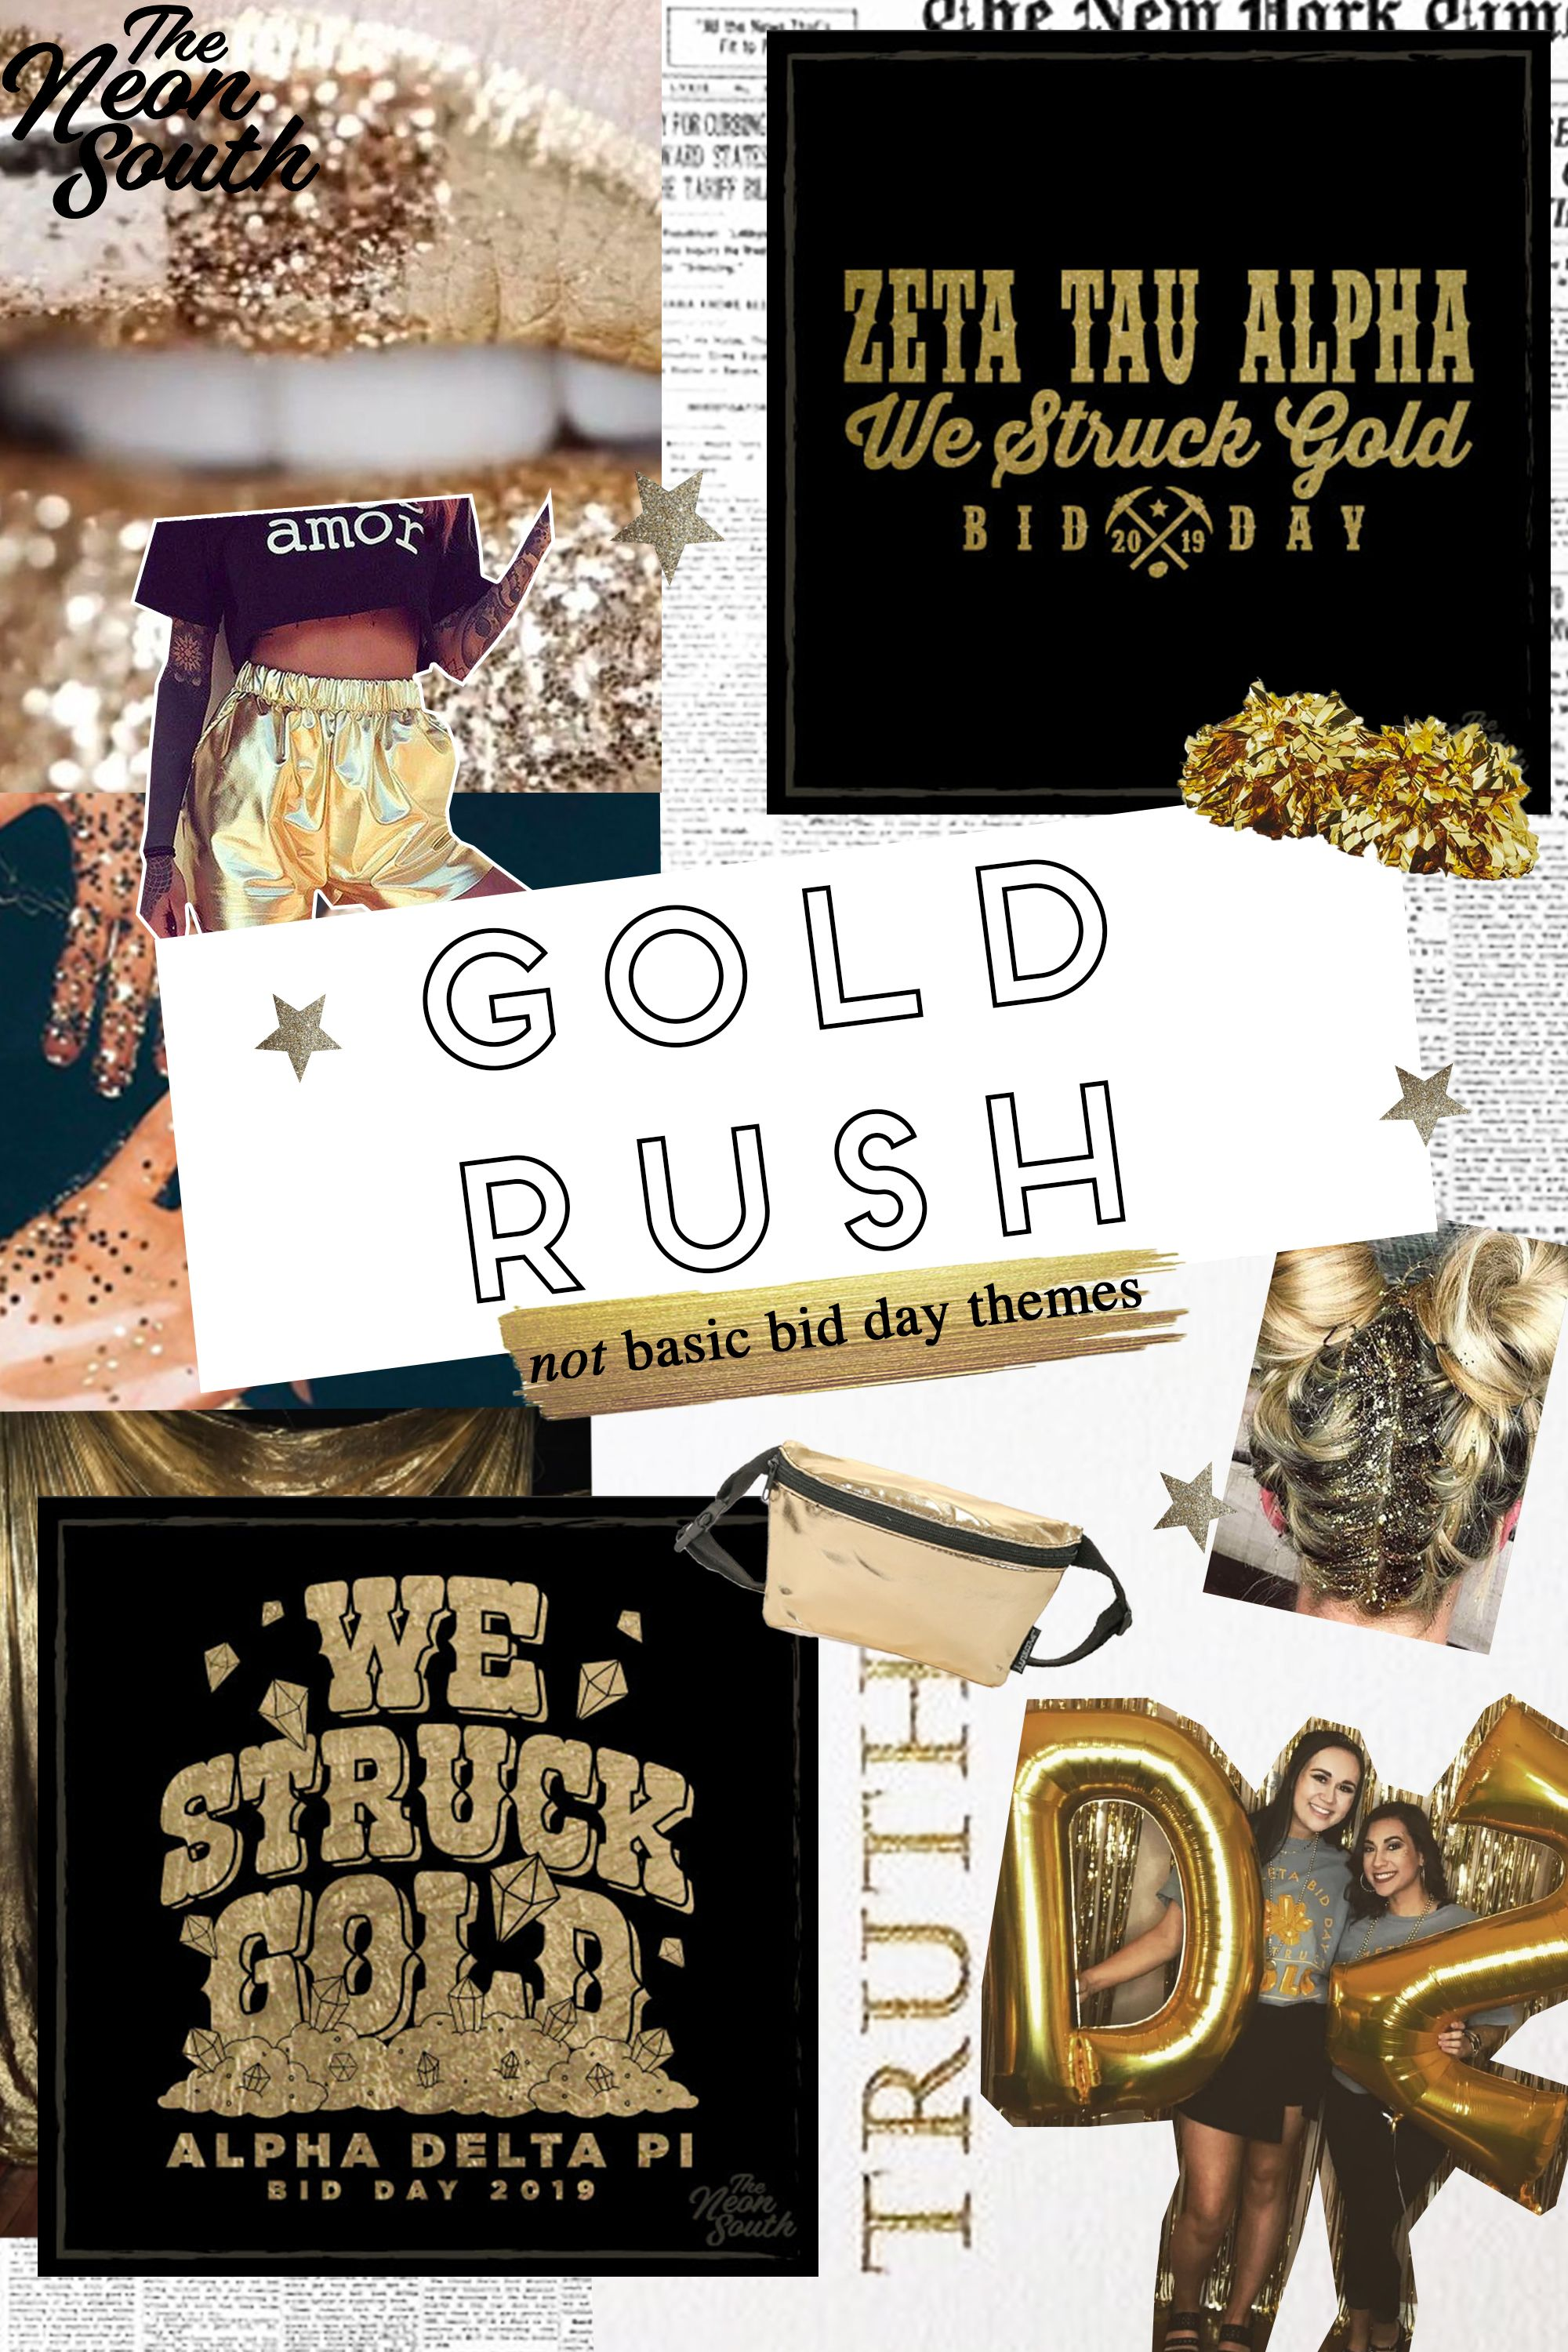 Gold Digger| The Neon South | Online Custom T-Shirts